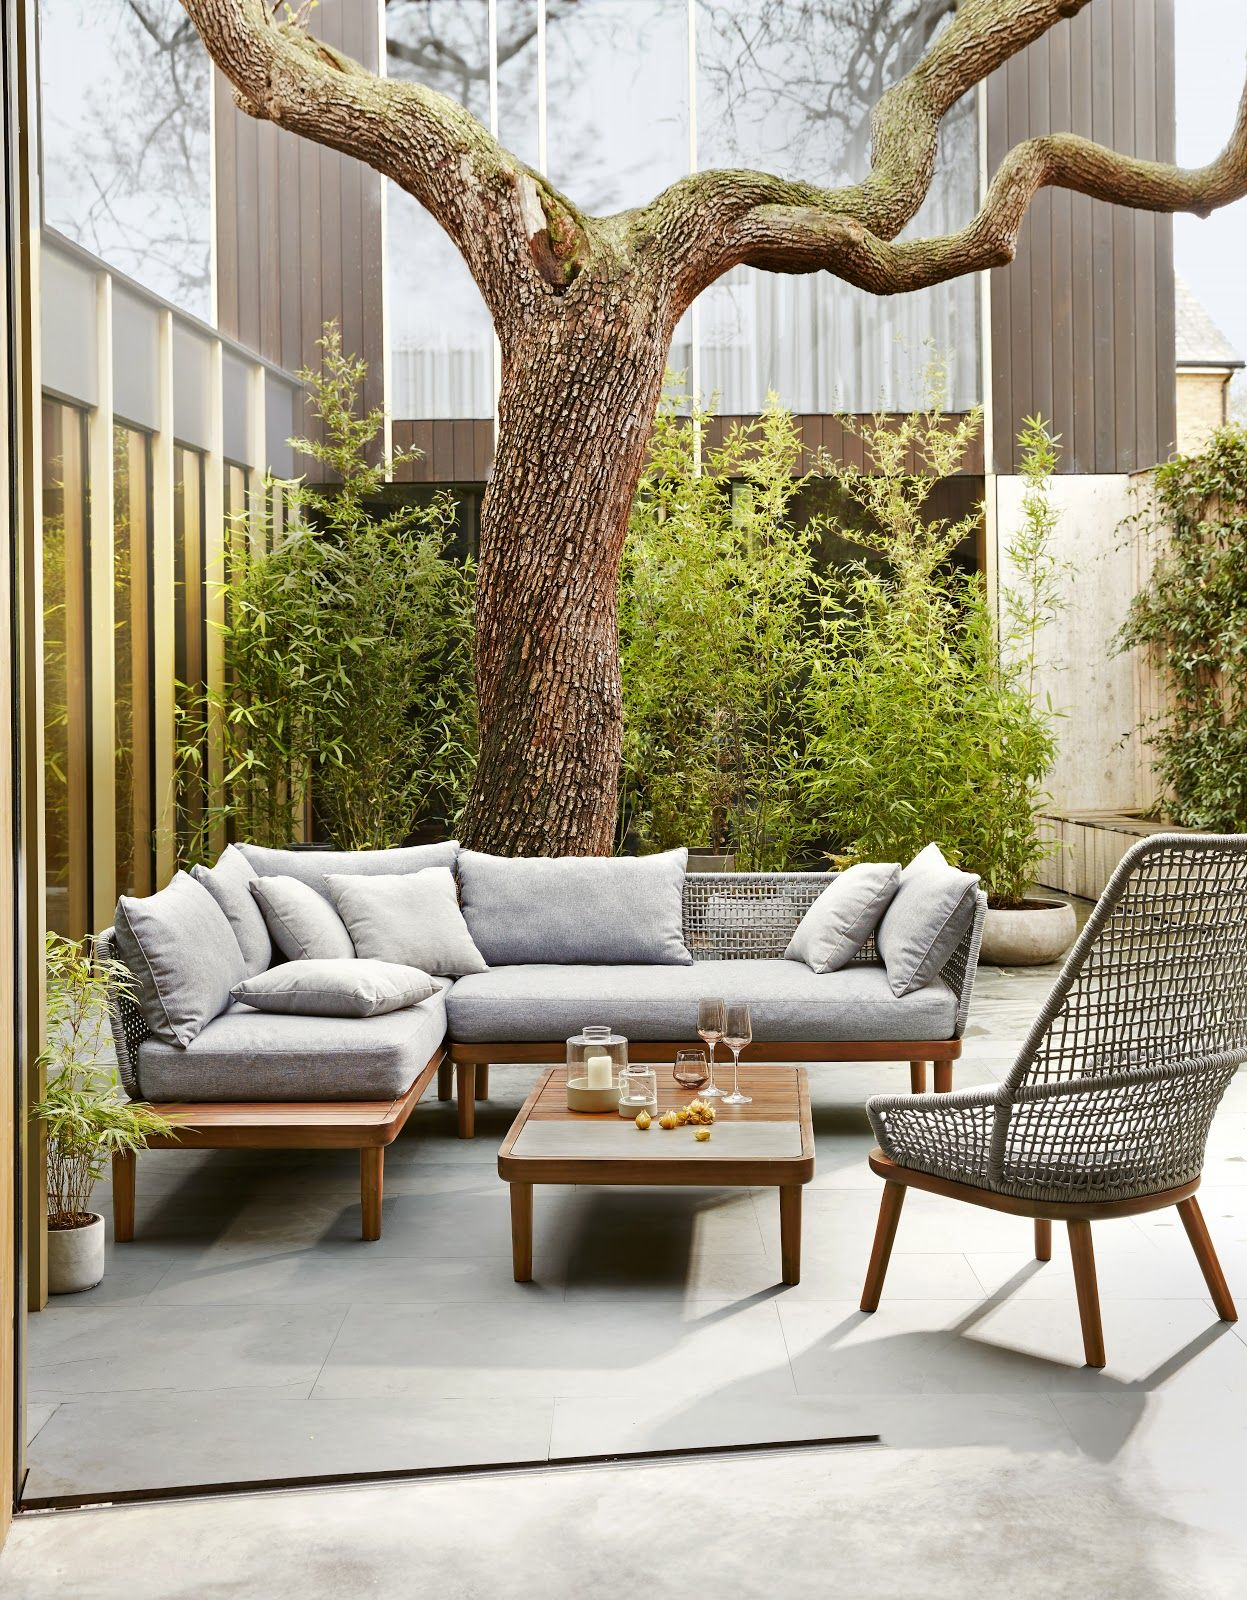 Design Project By John Lewis No 096 Outdoor Furniture The No 096